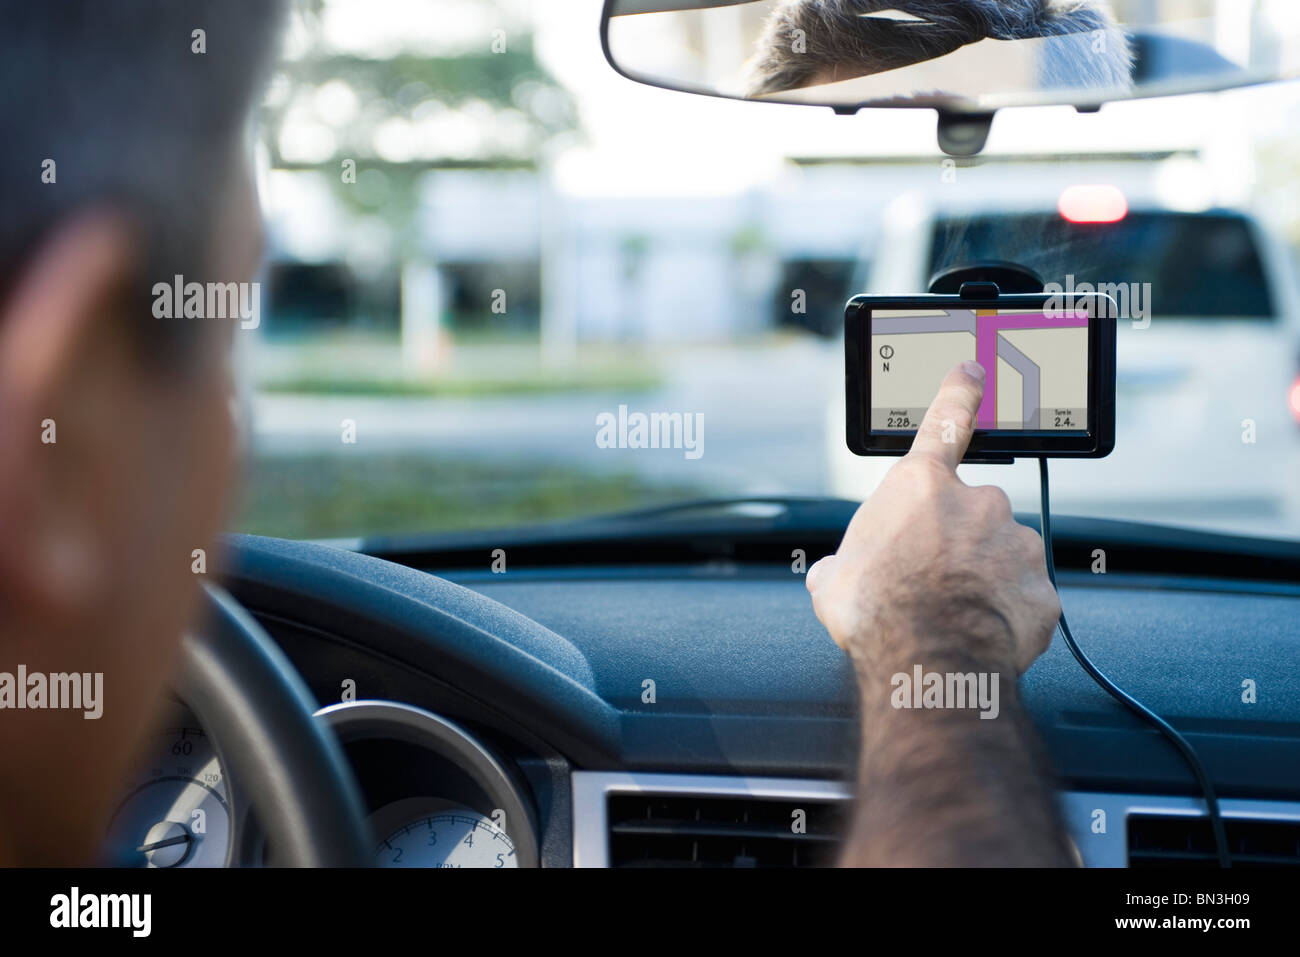 Driver using GPS for navigational assistance - Stock Image